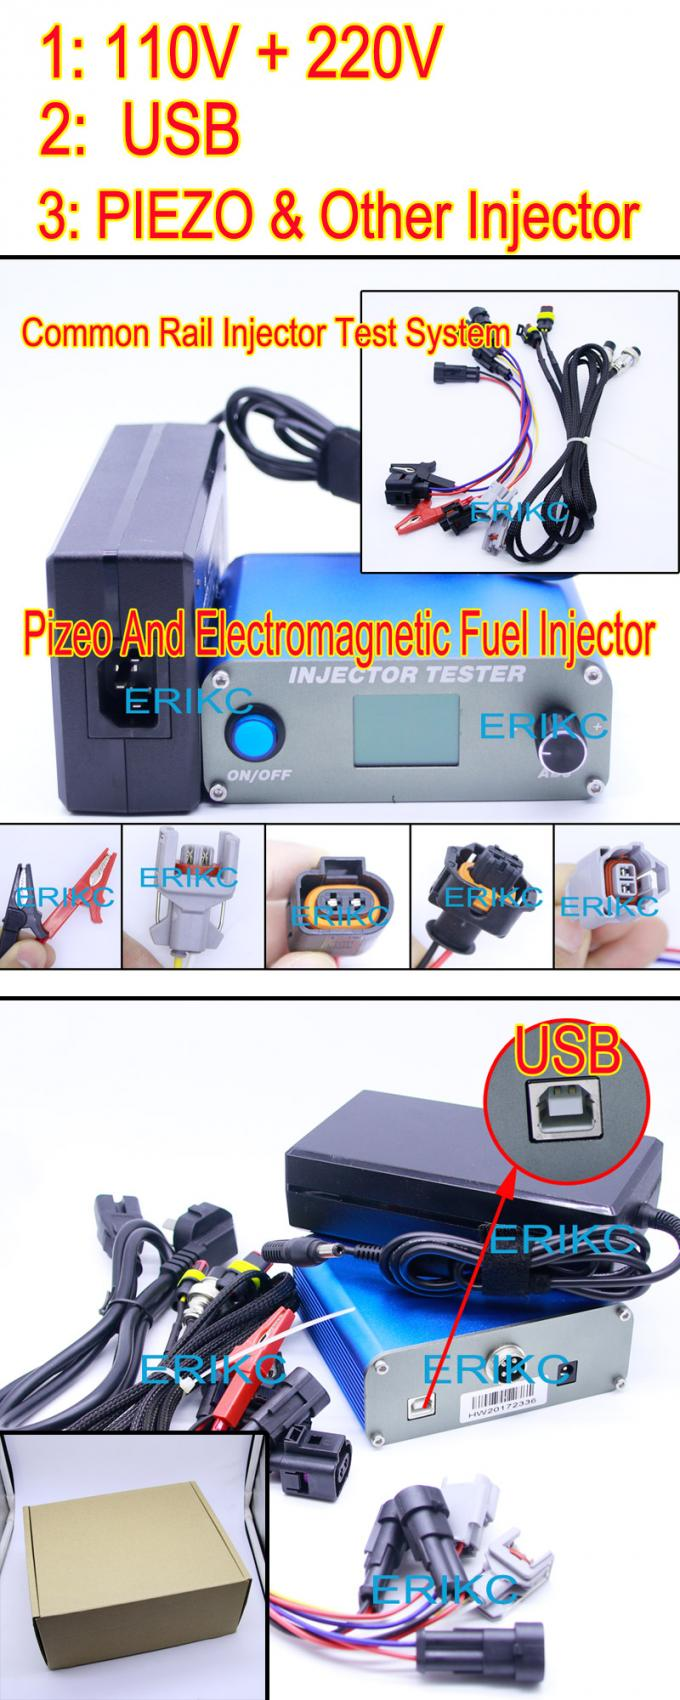 ERIKC test machine diesel common rail injector oil pressure testing equipment CR Bosch injector measuring tools